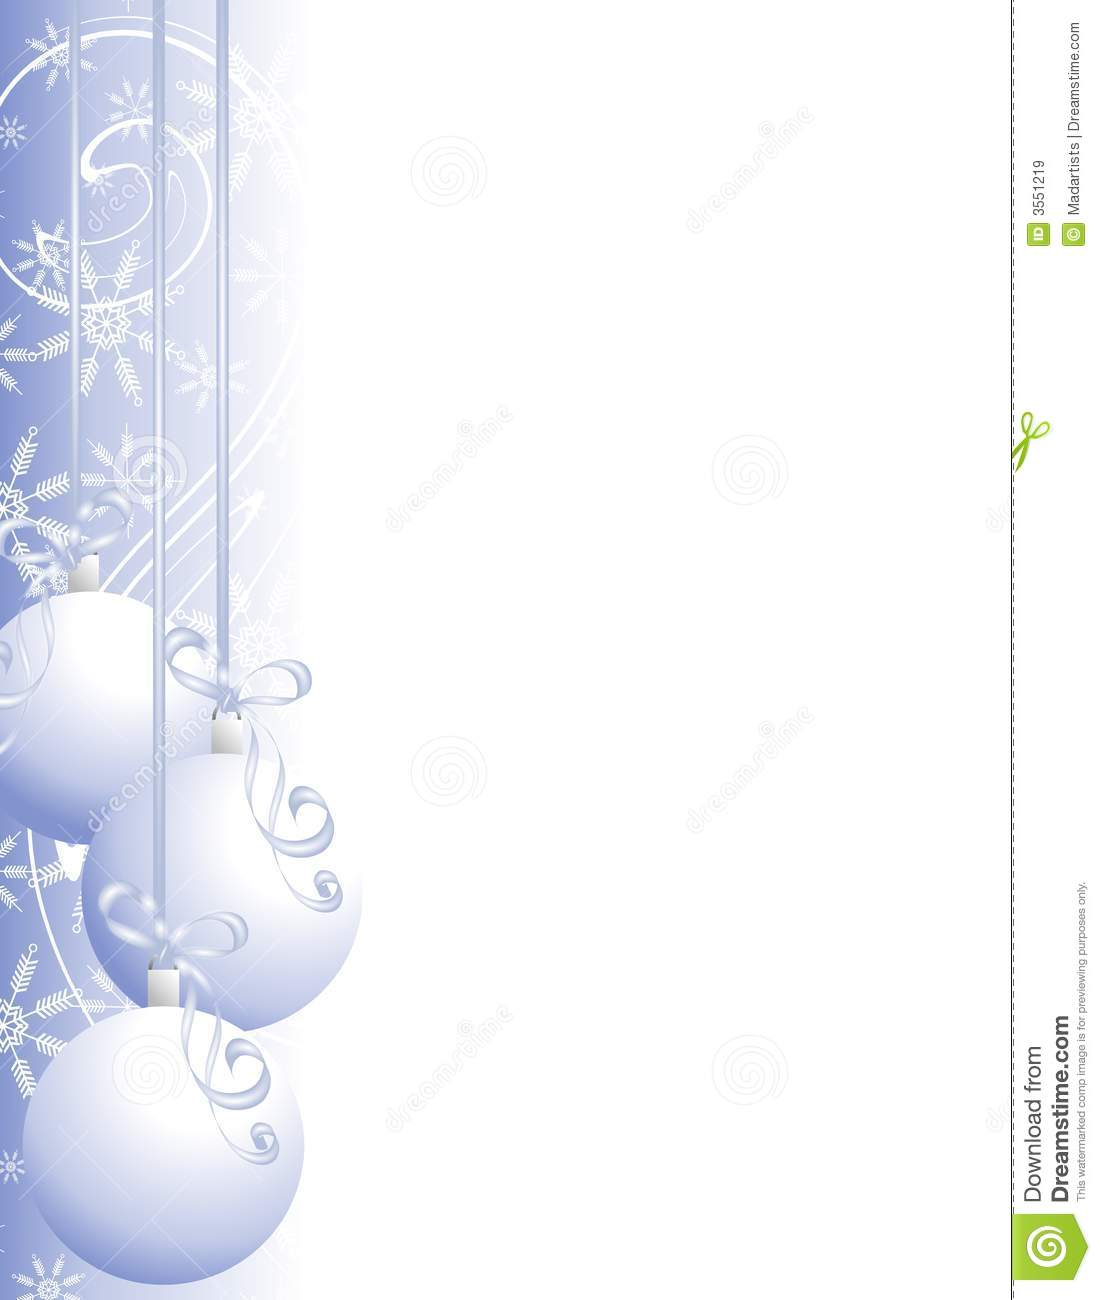 Christmas Page Border With Holiday Embellishments Of Snowflakes And